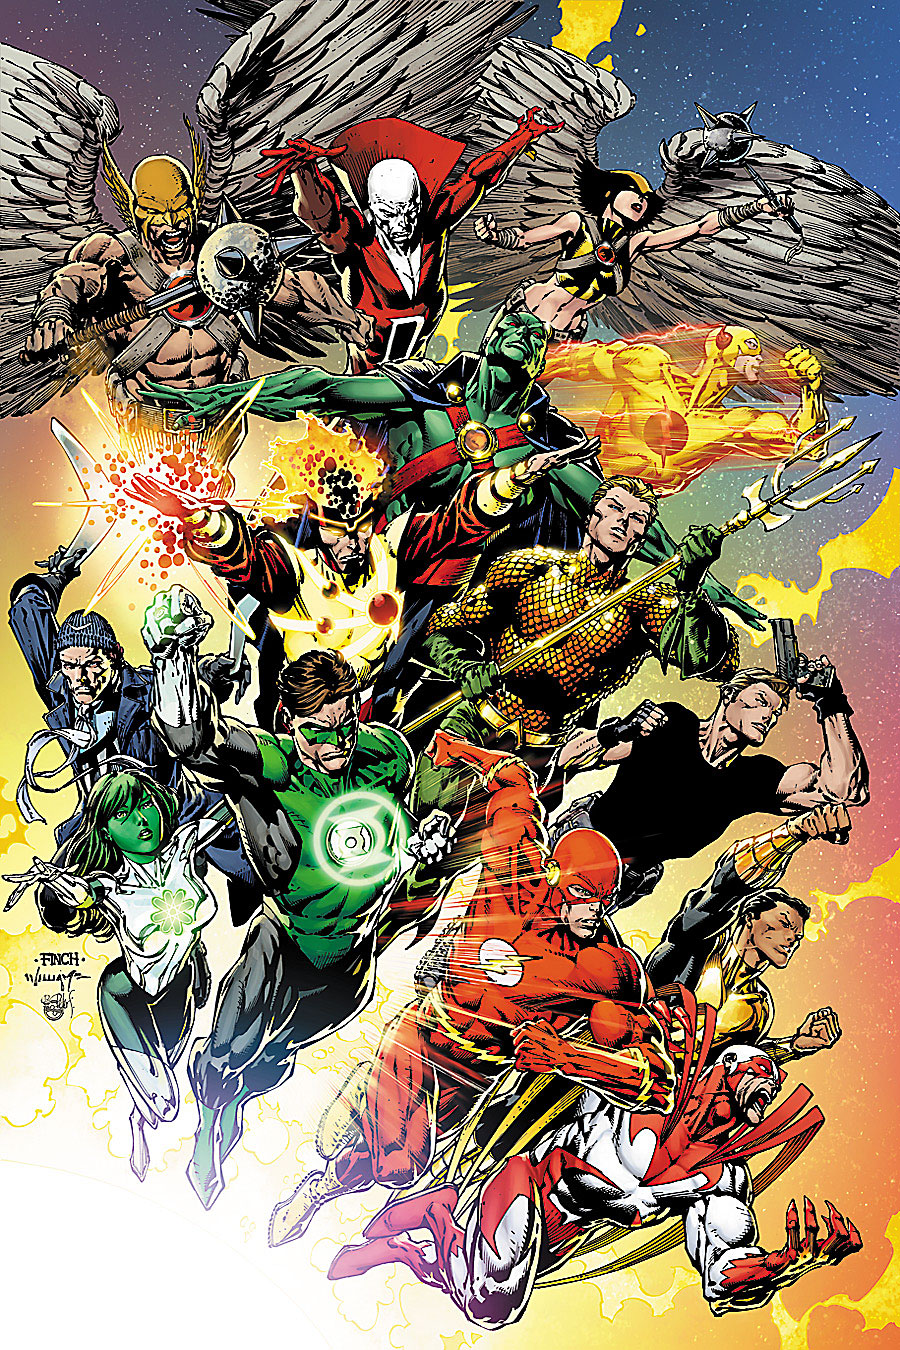 http://img1.wikia.nocookie.net/__cb20140827202903/marvel_dc/images/a/a2/Brightest_Day_001.jpg